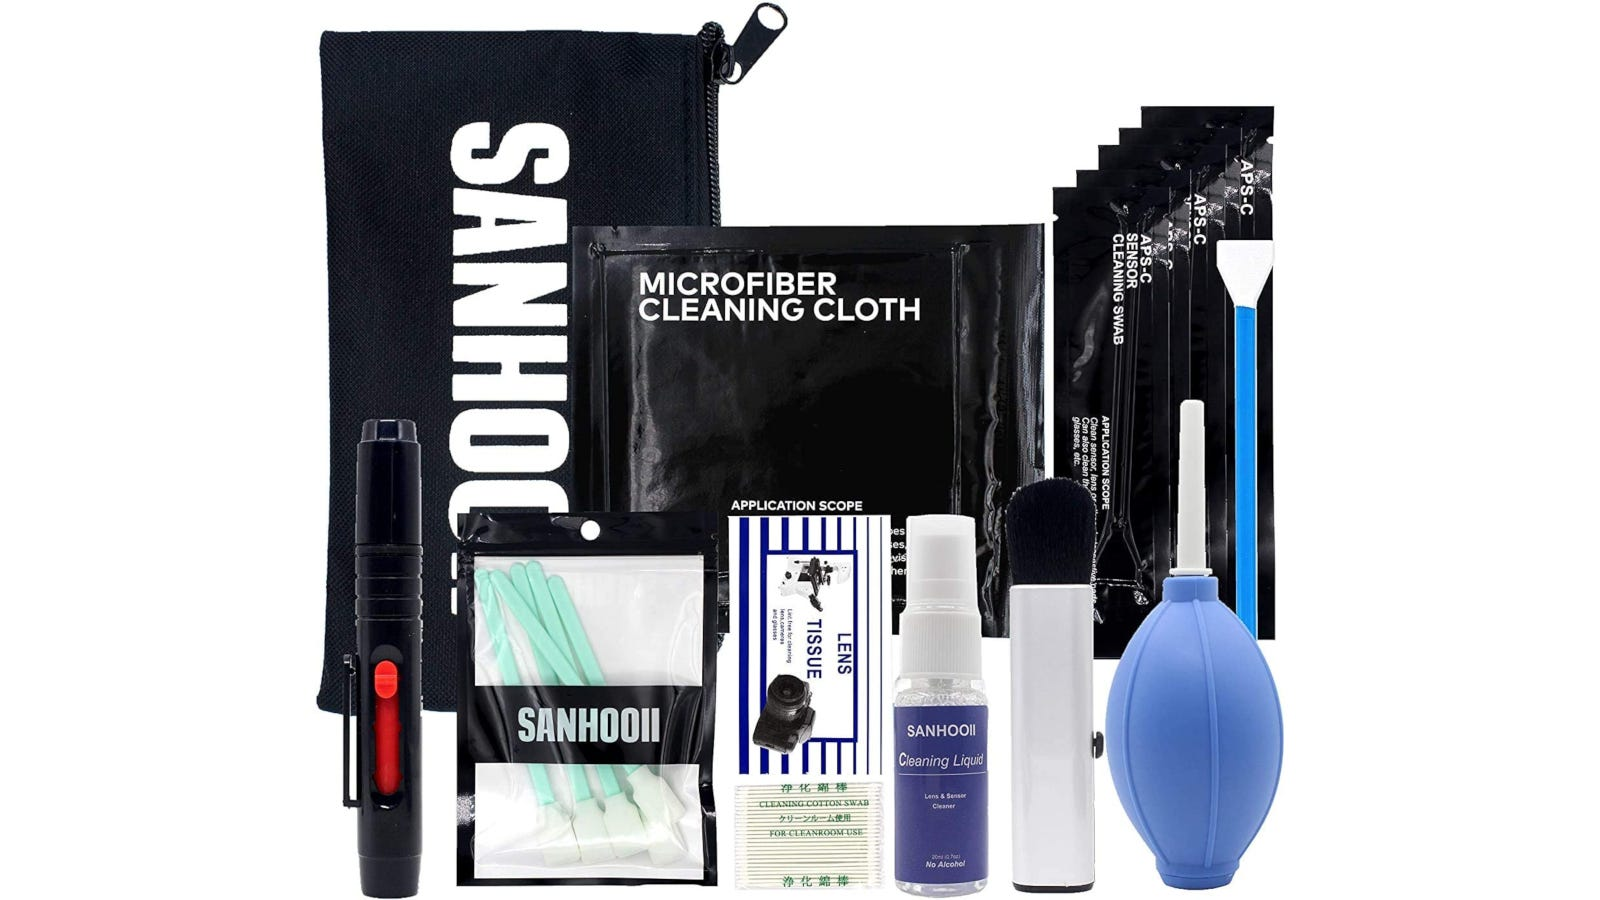 Camera lens cleaning kit with two types of swabs, air blower, cleaning pen, and more